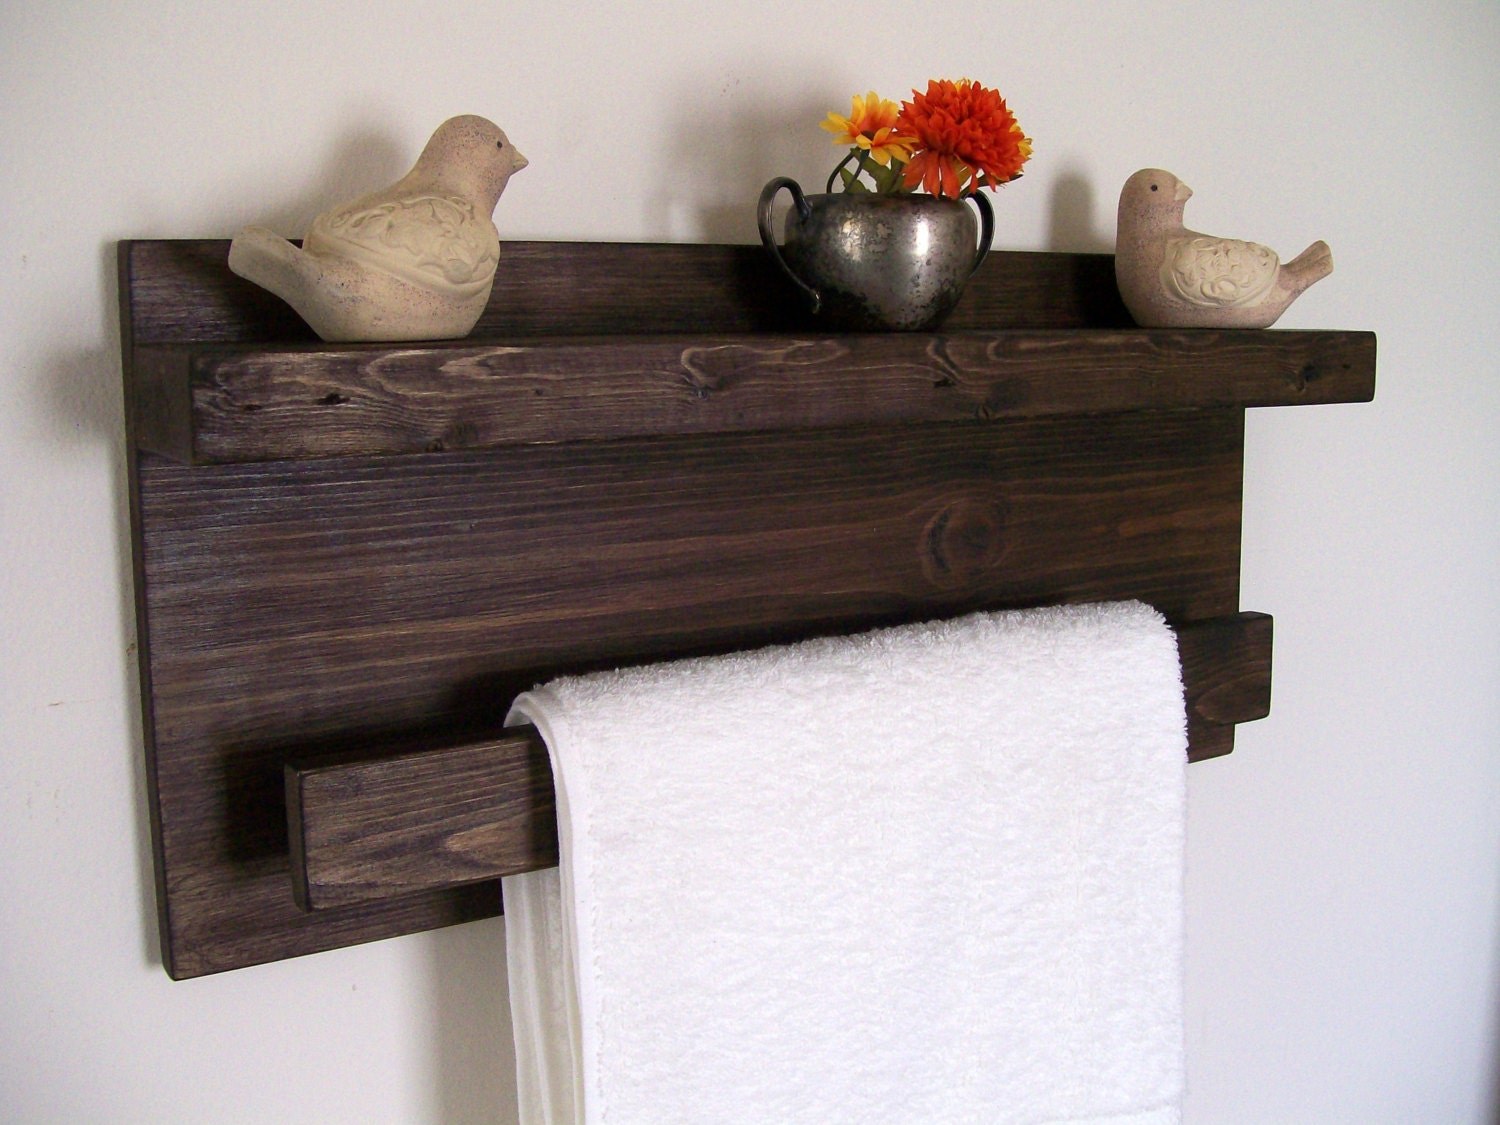 Custom Made Bath Shelf With Boat Cleat Towel Hooks By Blissopia